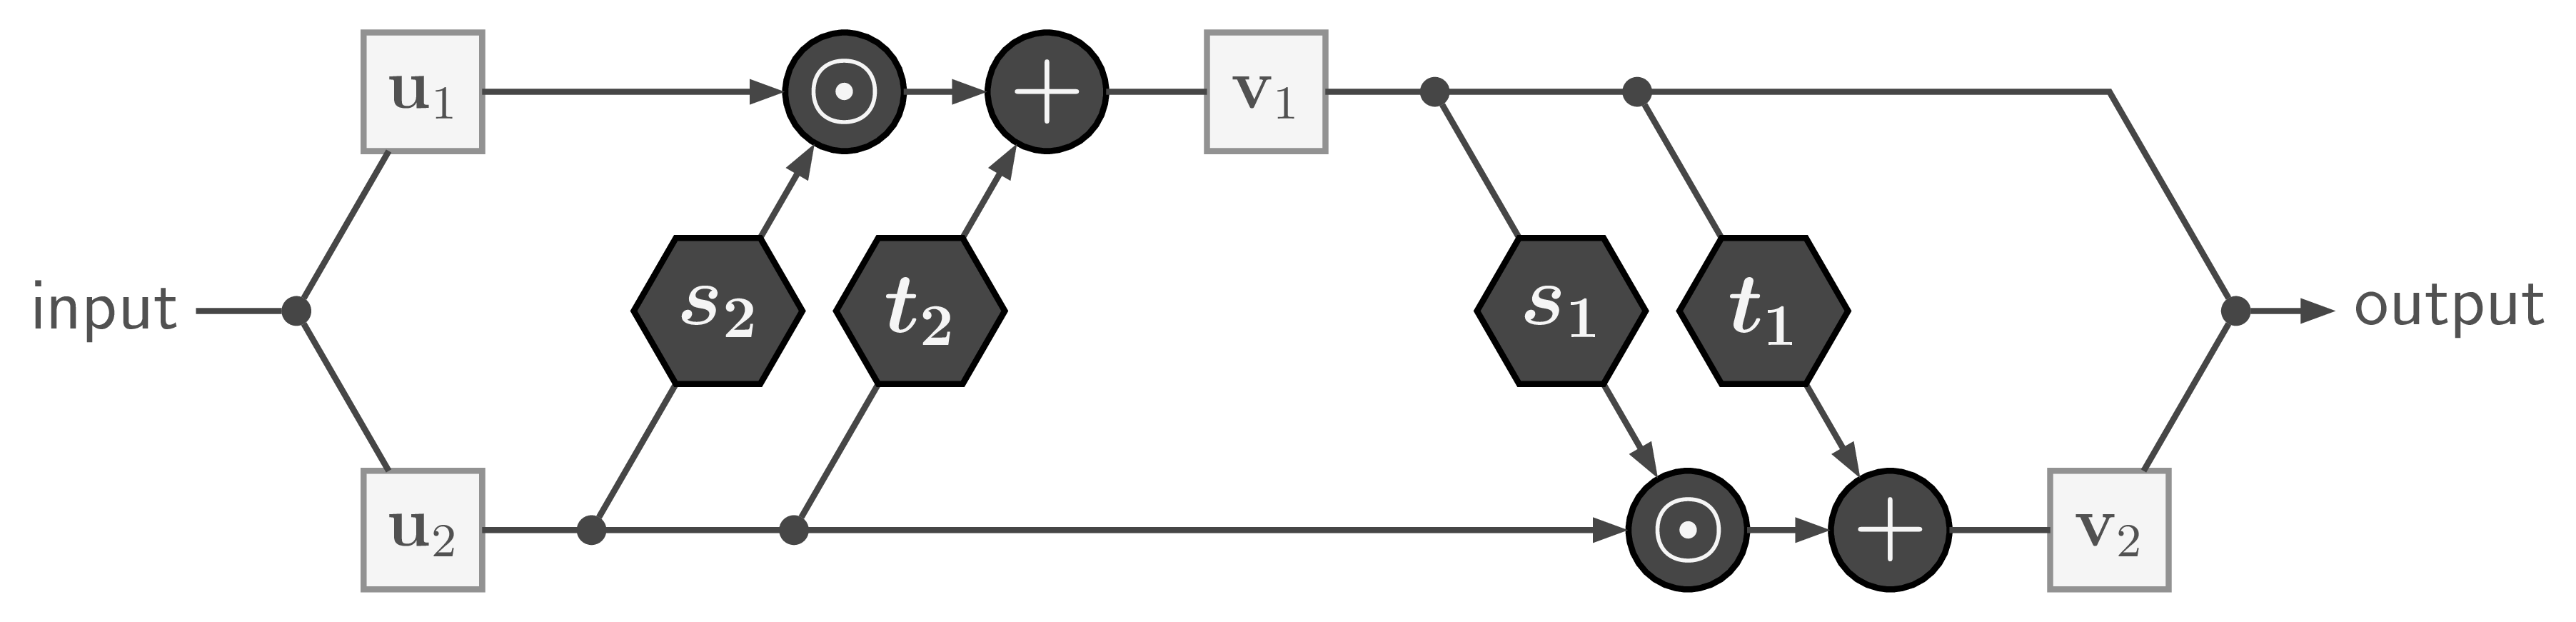 Diagram of a 'Coupling Layer', the building block of our Invertible Neural Network